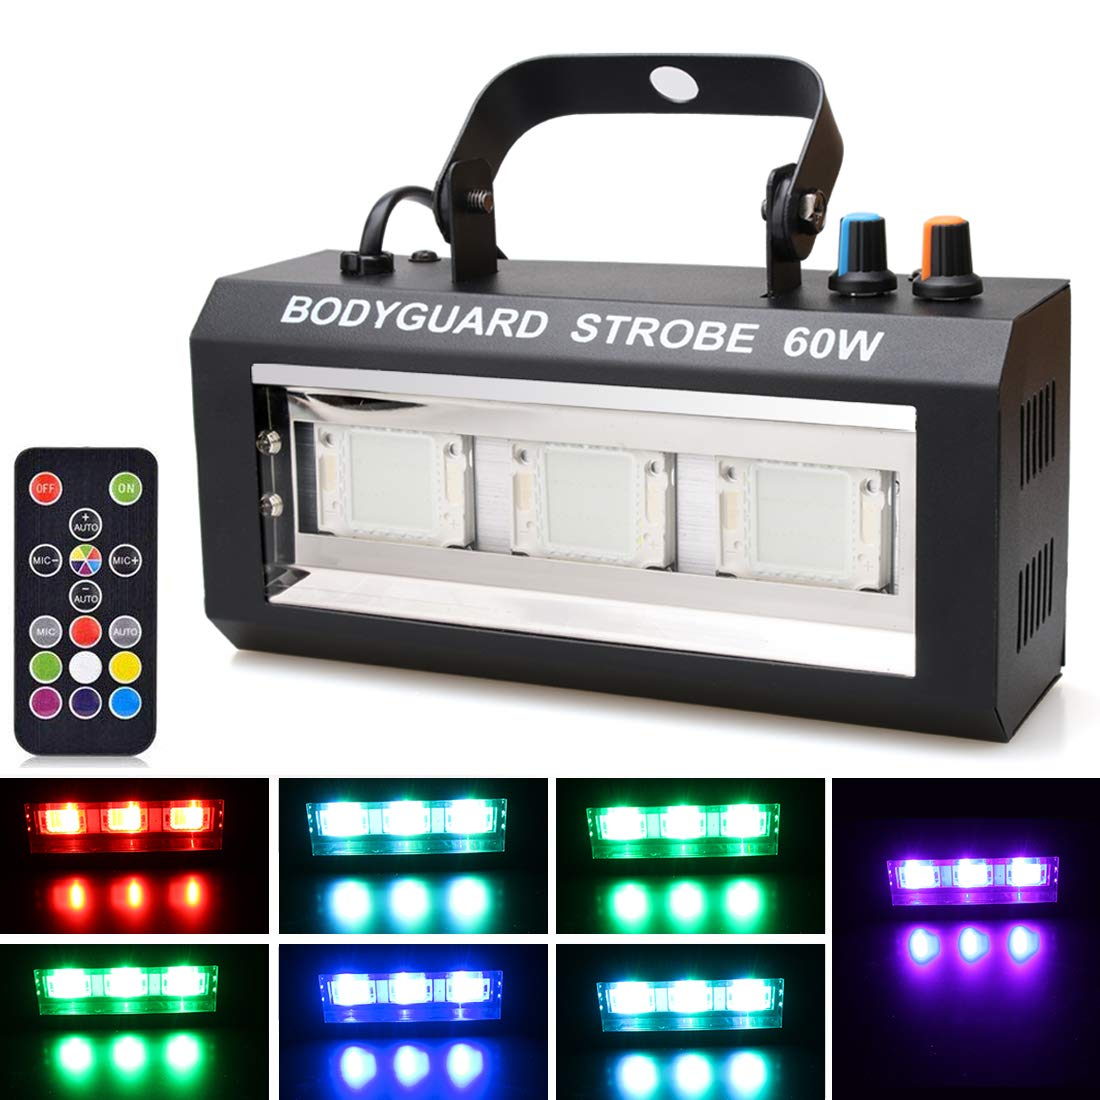 Halloween LED Strobe Light,Sound Activated Party Lights 7 Colors Dj Lighting, RBG Disco Ball Light, Strobe Lamp 7 Modes Stage Par Light for Home Room Dance Parties Bar Karaoke Xmas Wedding Show Club by Luditek